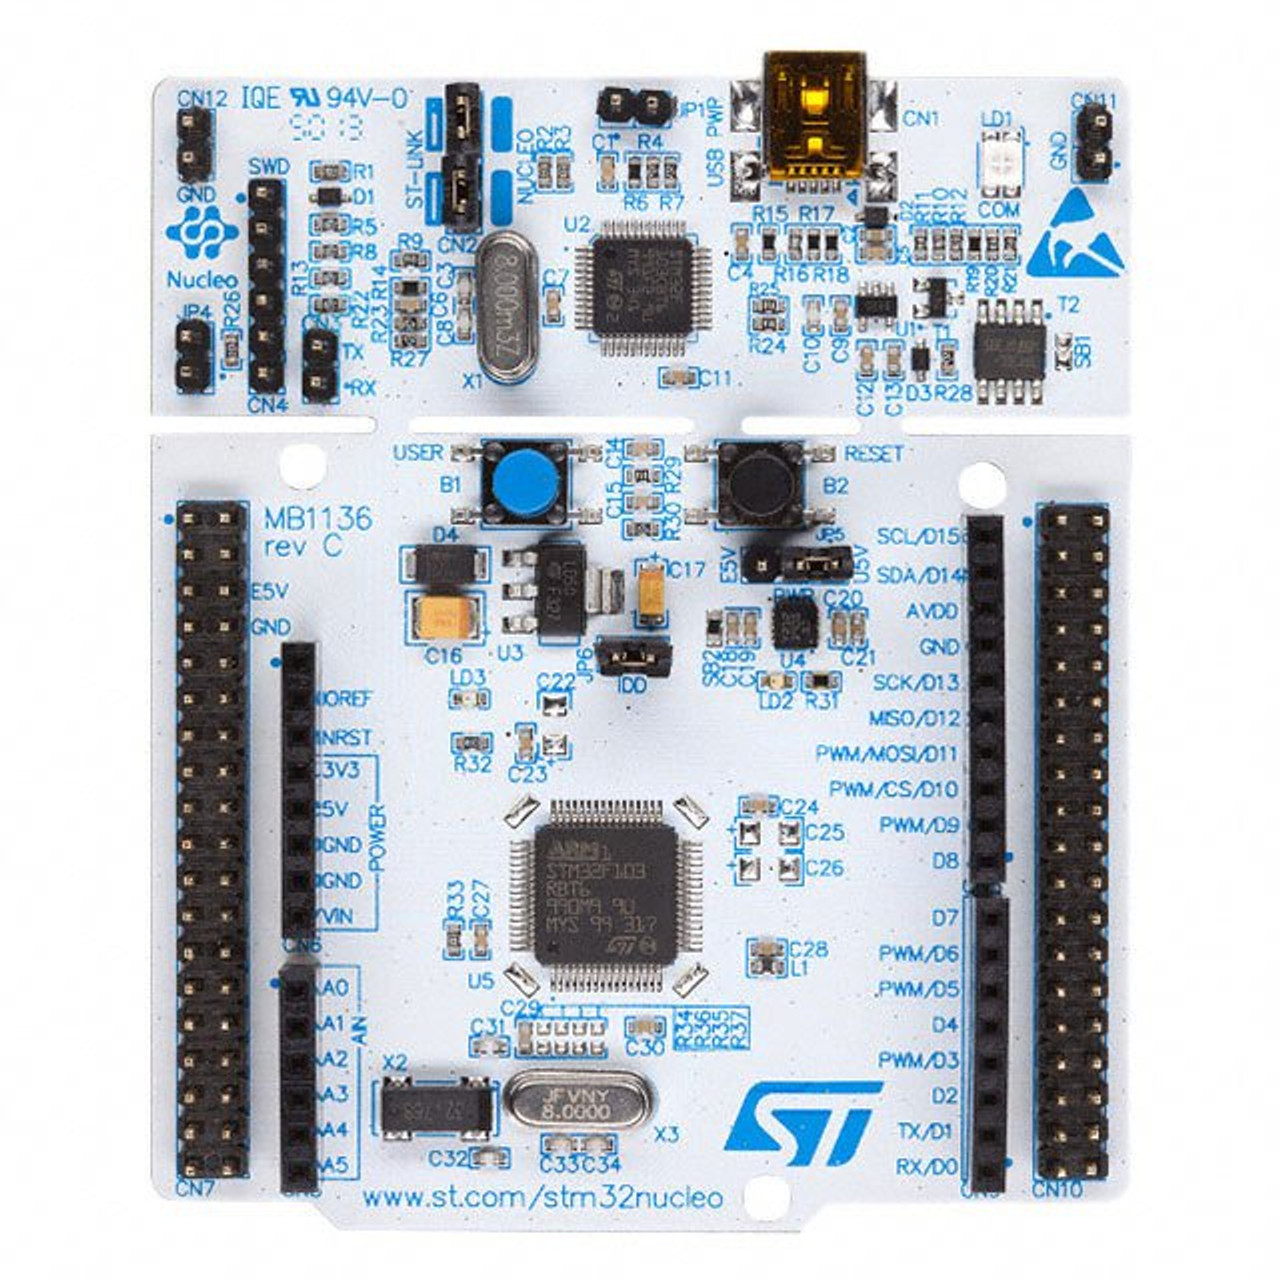 NUCLEO-F401RE - Nucleo Board (Arduino Compatible) - STM32F401RE